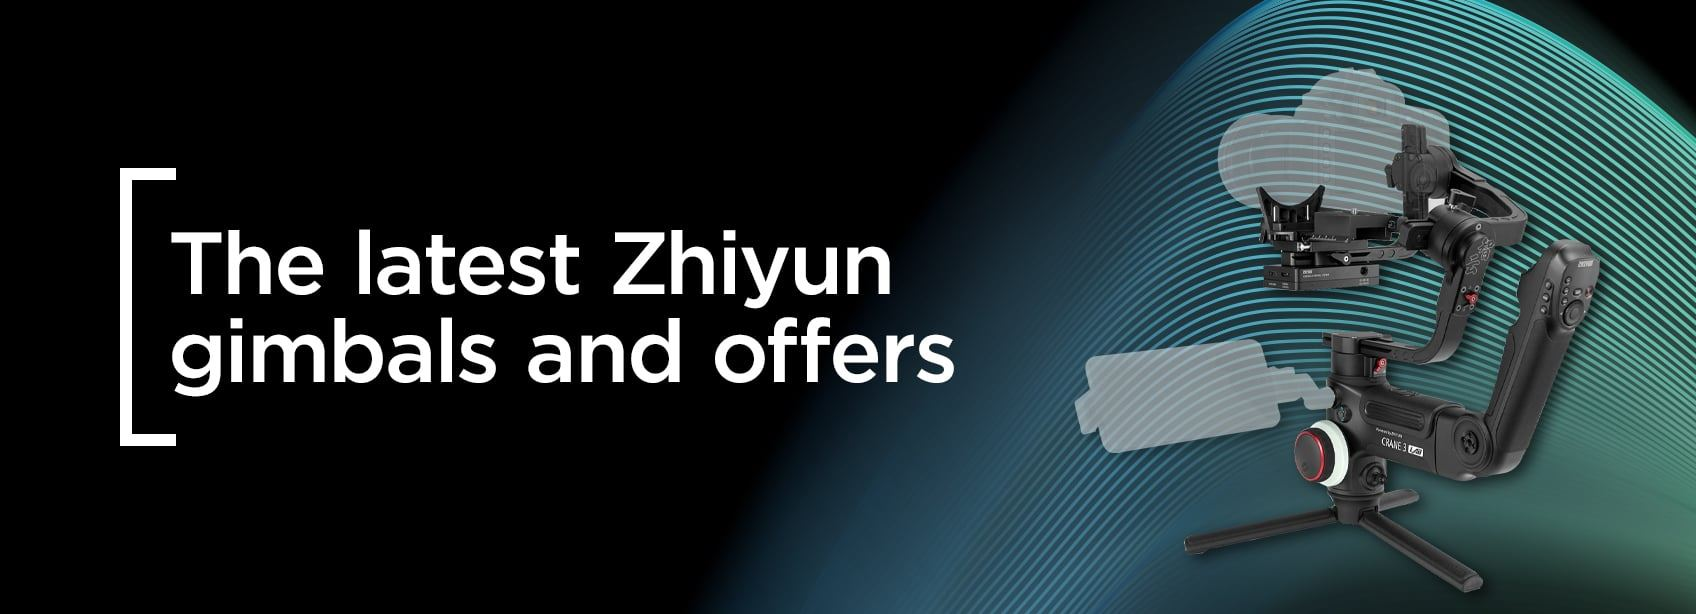 Wex-Zhiyun-LatestOffers-H-270420.jpg